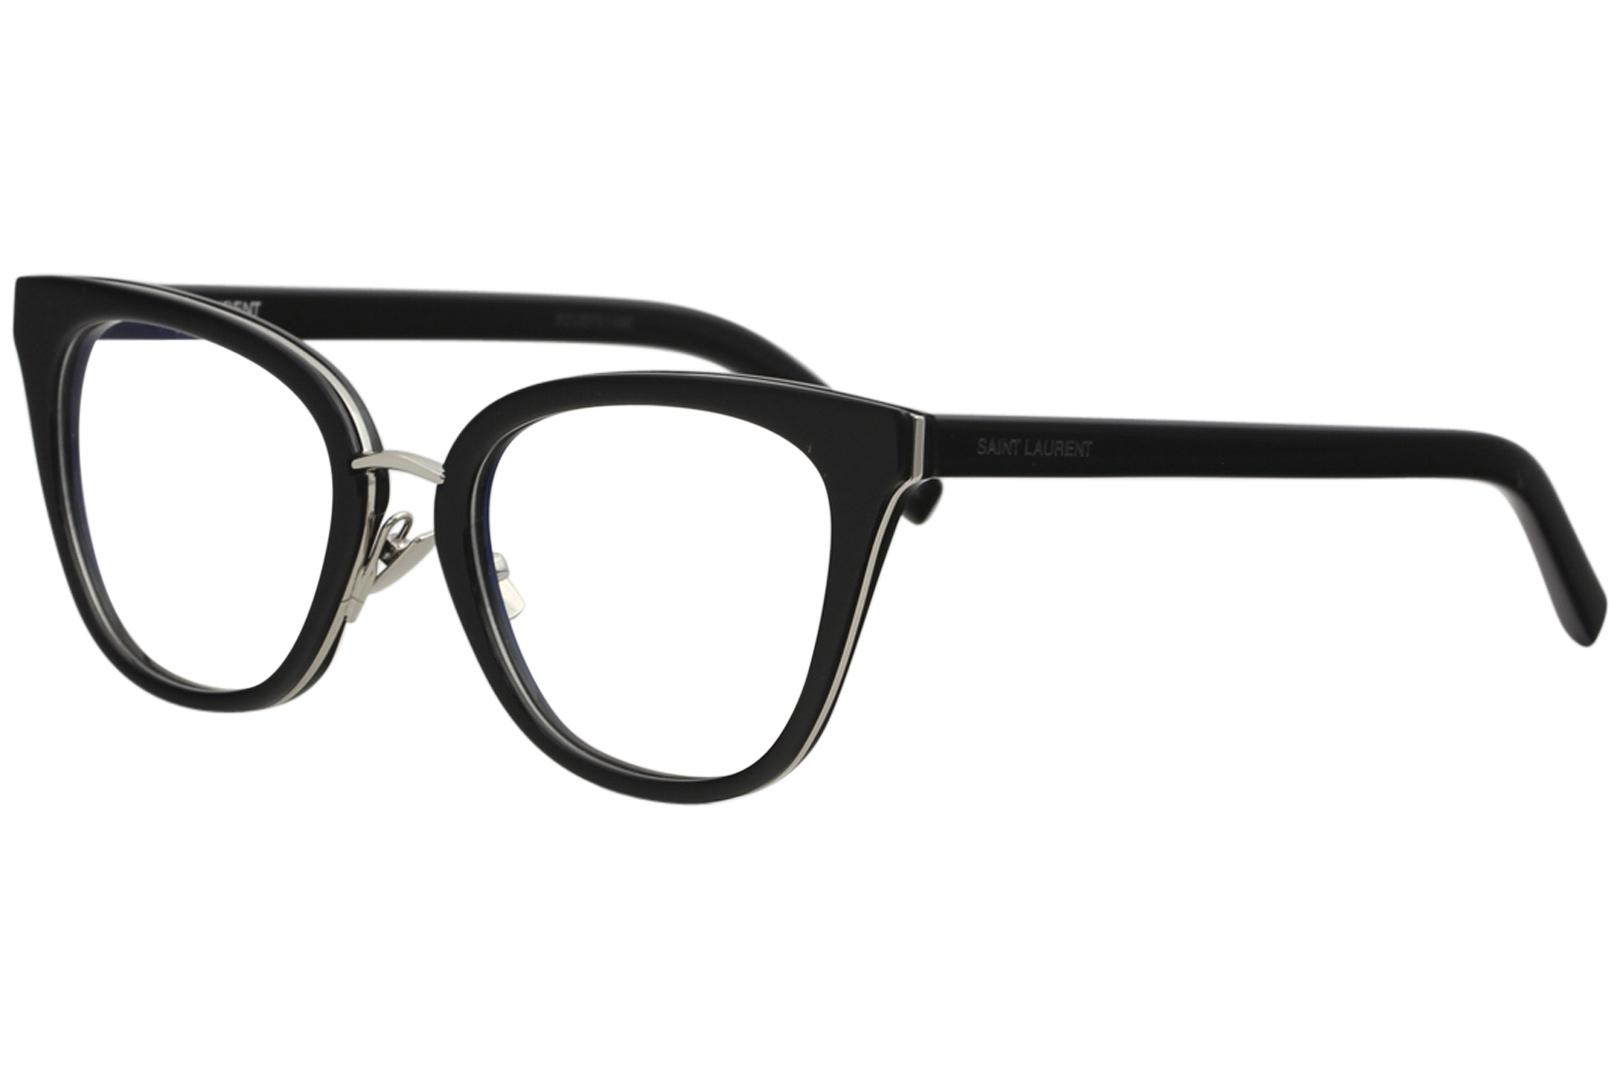 Image of Saint Laurent Eyeglasses SL220 SL/220 Full Rim Optical Frame - Black/Silver   002 - Lens 51 Bridge 20 Temple 145mm